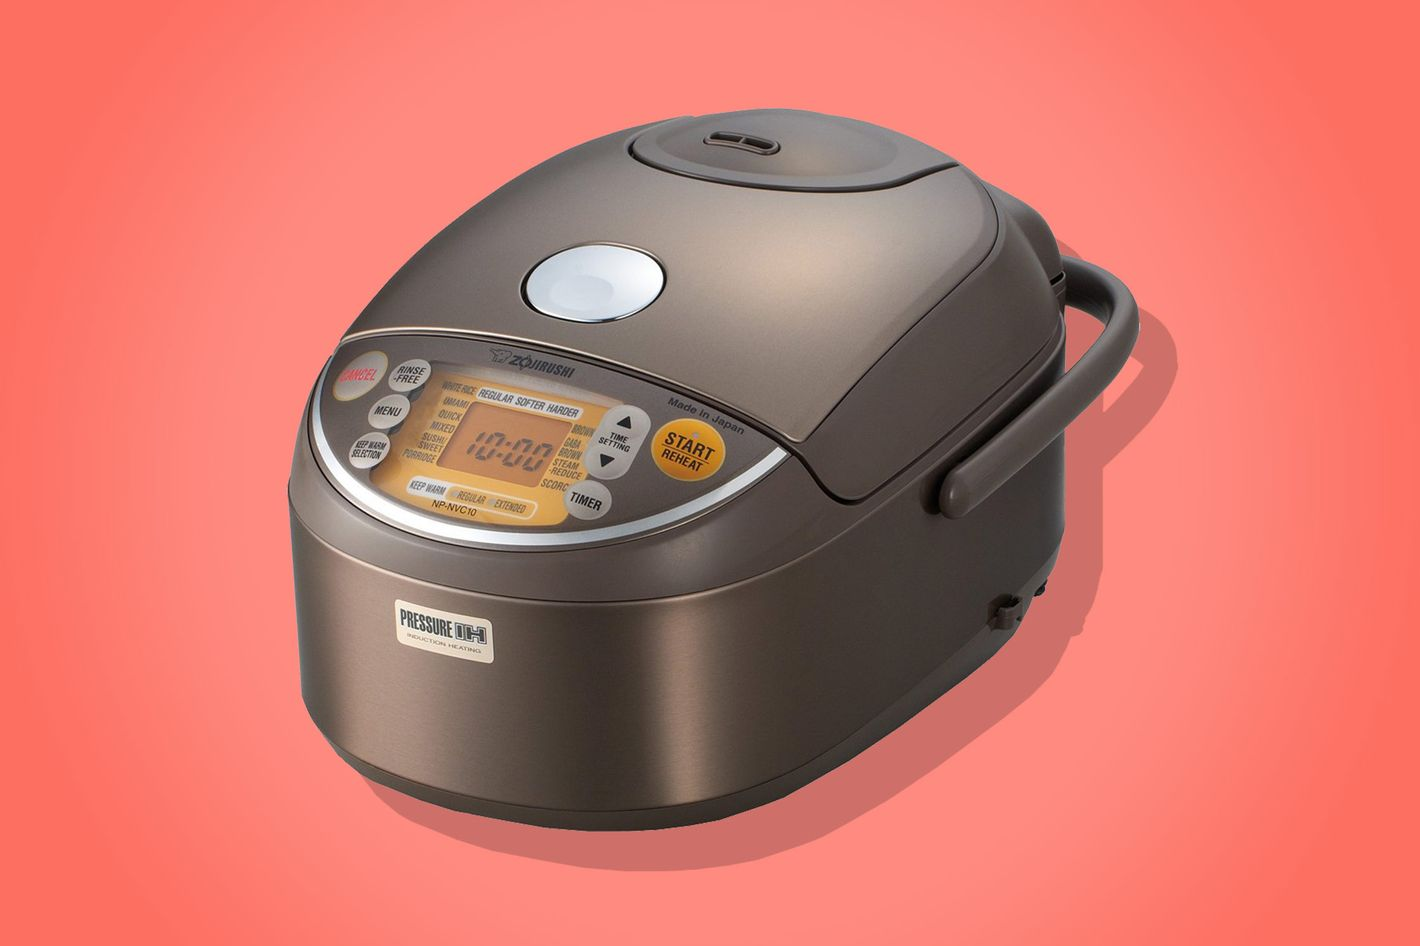 Zojirushi Induction Pressure Stainless Steel Rice Cooker